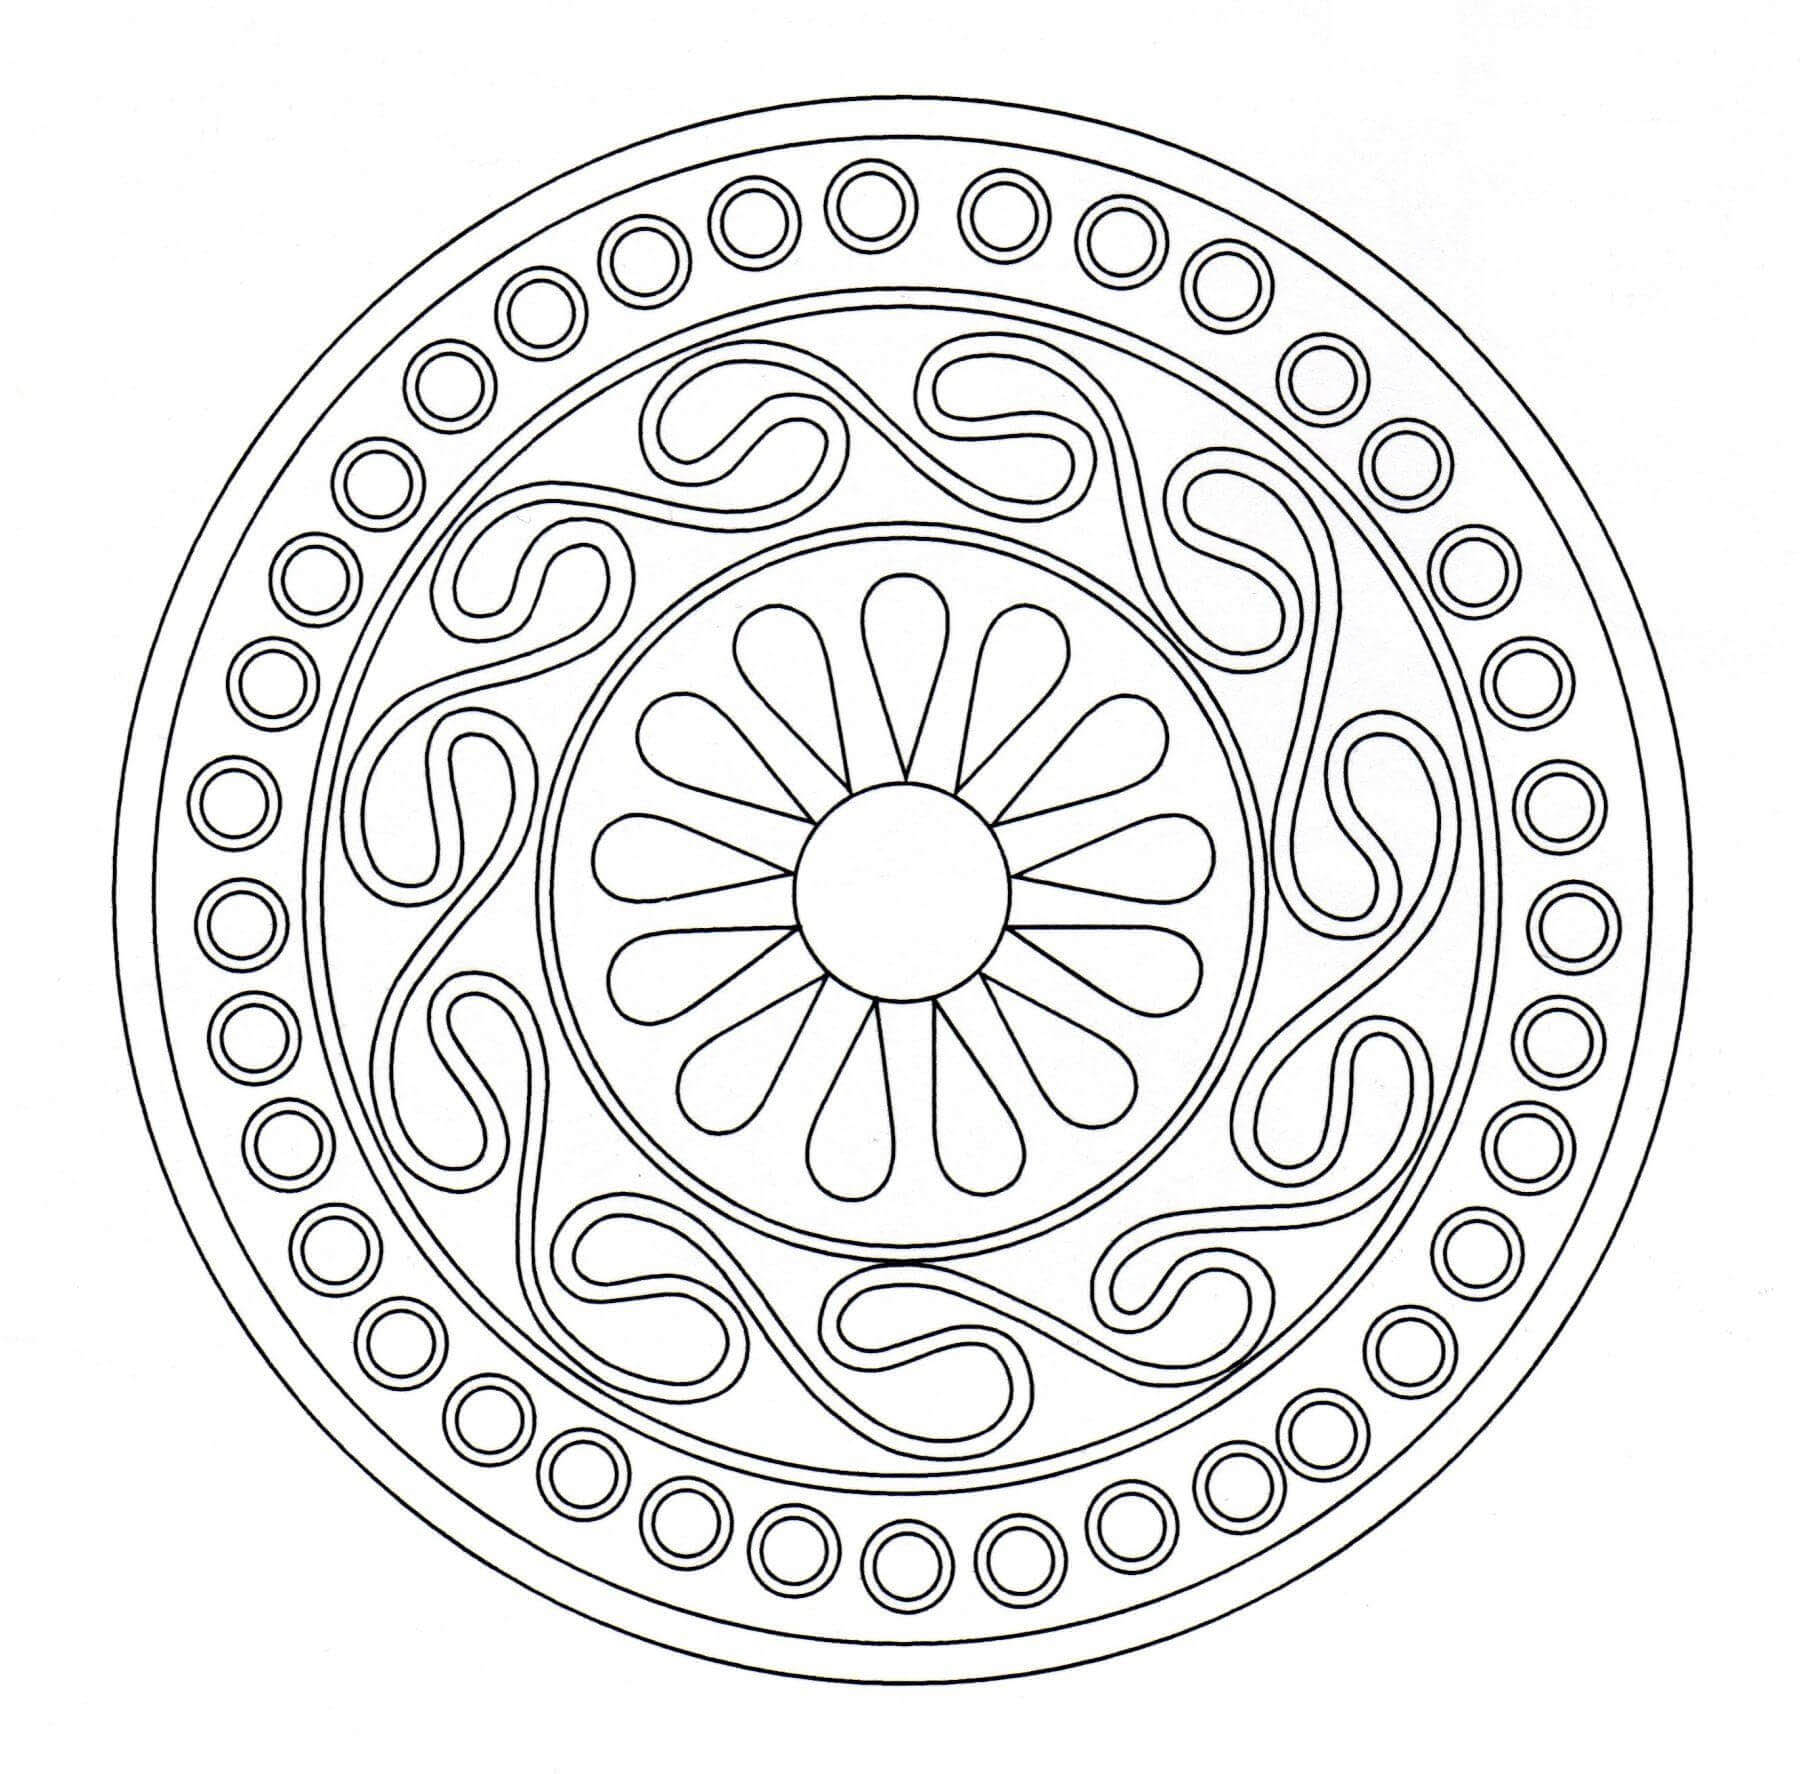 Express your soul, your passion, and let yourself be guided by your creativity to turn this Mandala into ART ! Some like to express themselves through words, while some use the form art ... What do you prefer ?